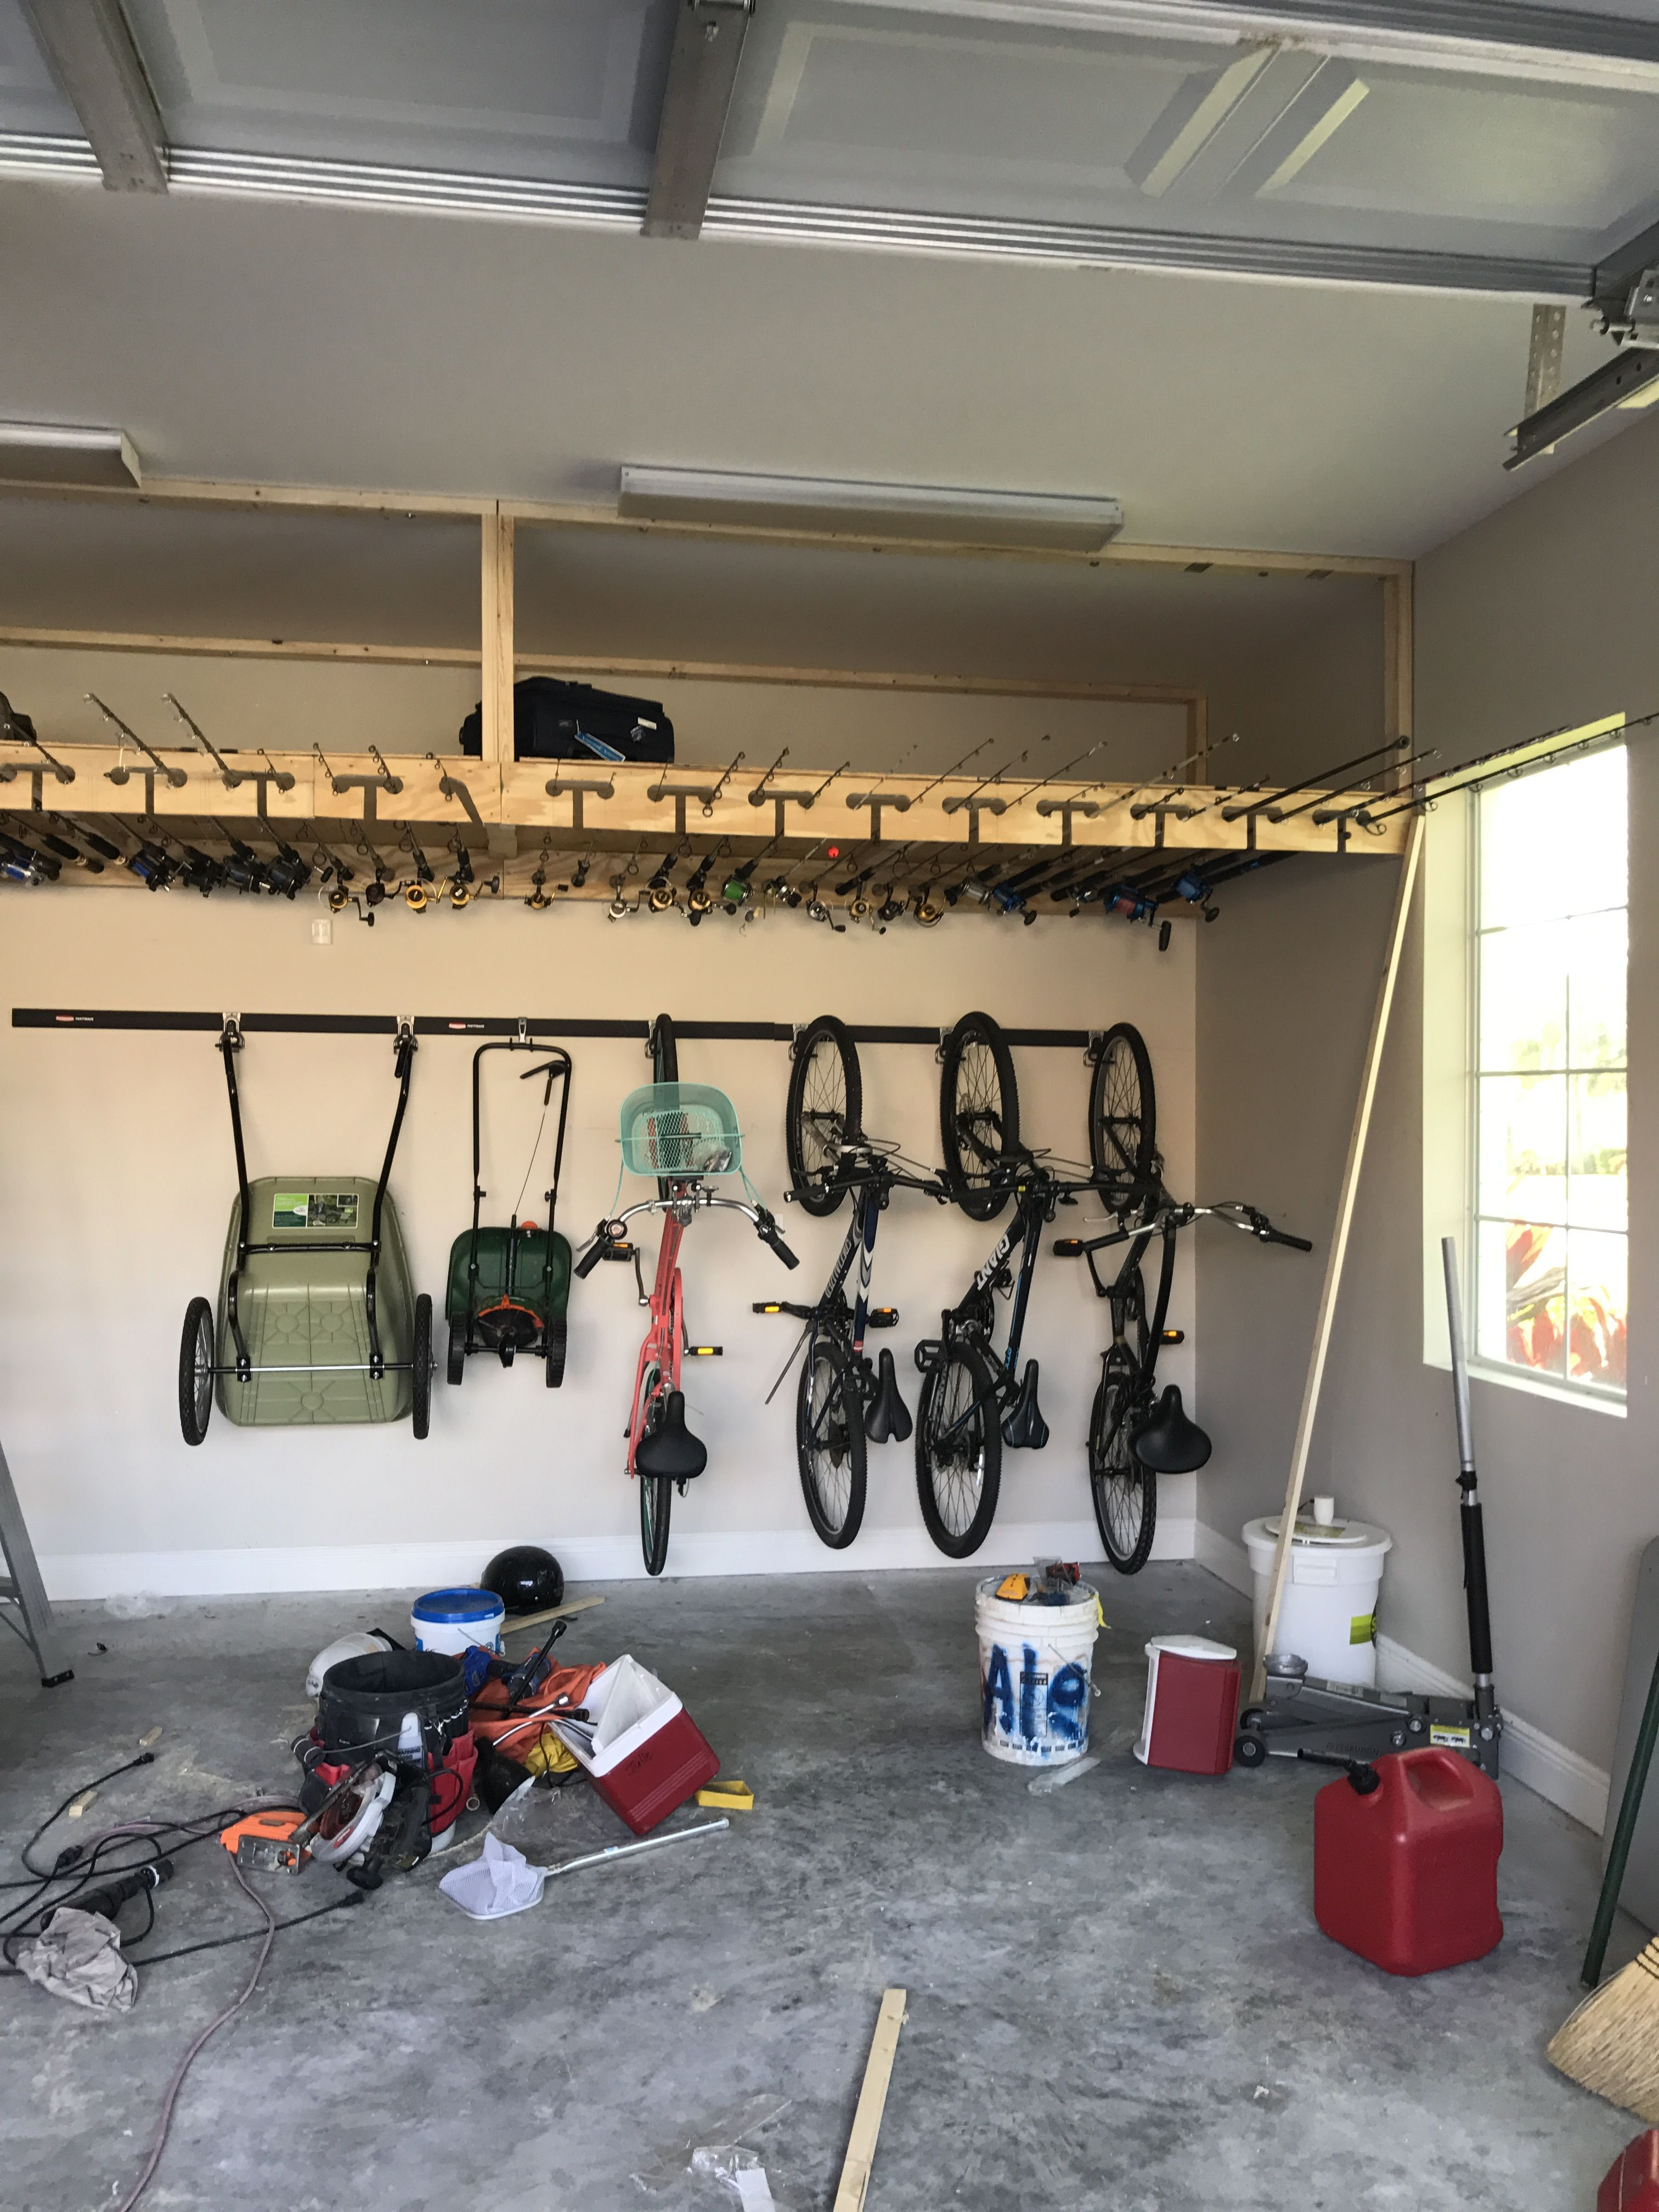 Ceiling Fishing Rod Storage With Over 200 Sf Of Overhead Storage Garage  Project. #fishingrod